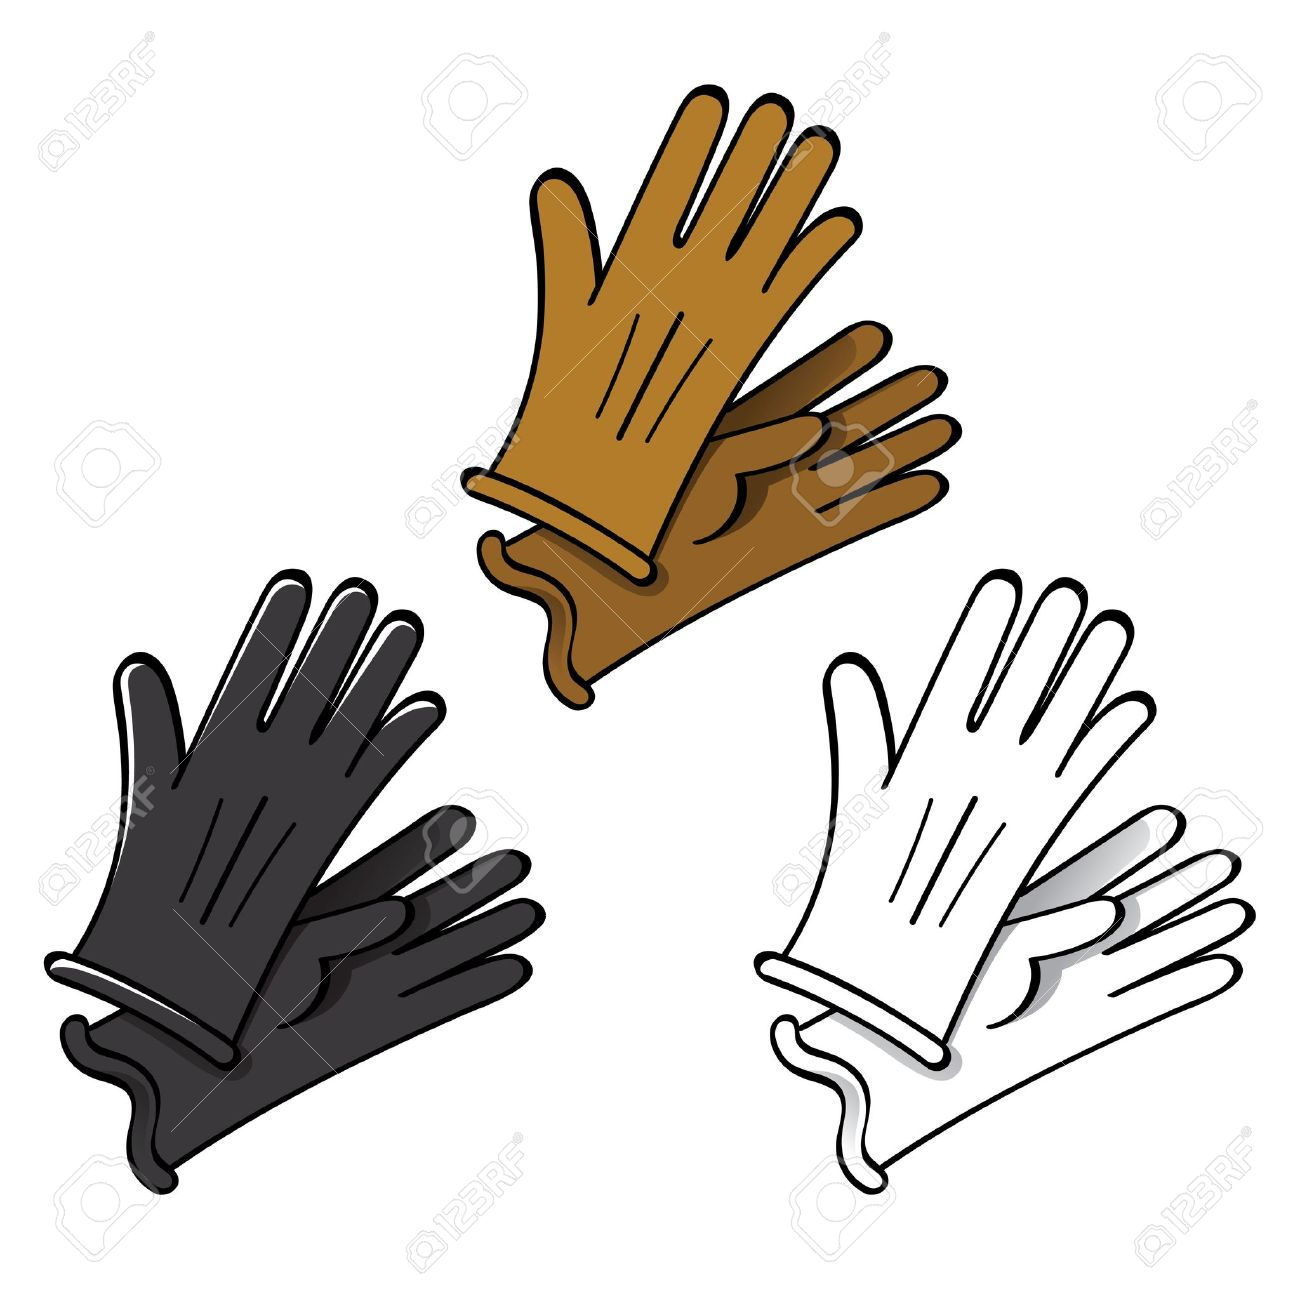 Gloves Leather Fashion Skin Suede Finger Hand Wear Royalty Free.